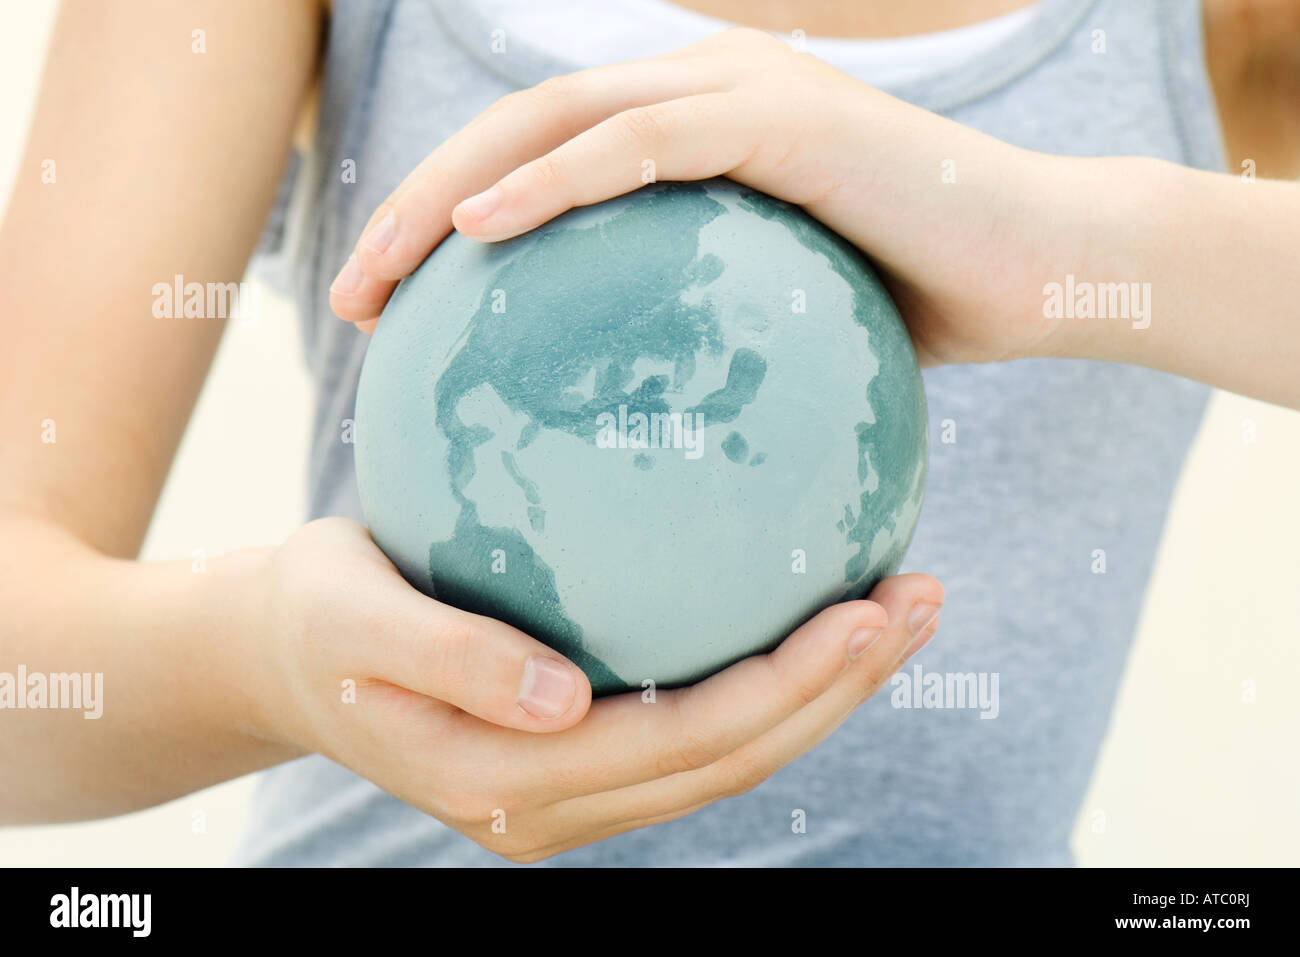 Woman holding globe in cupped hands, close-up, cropped view - Stock Image